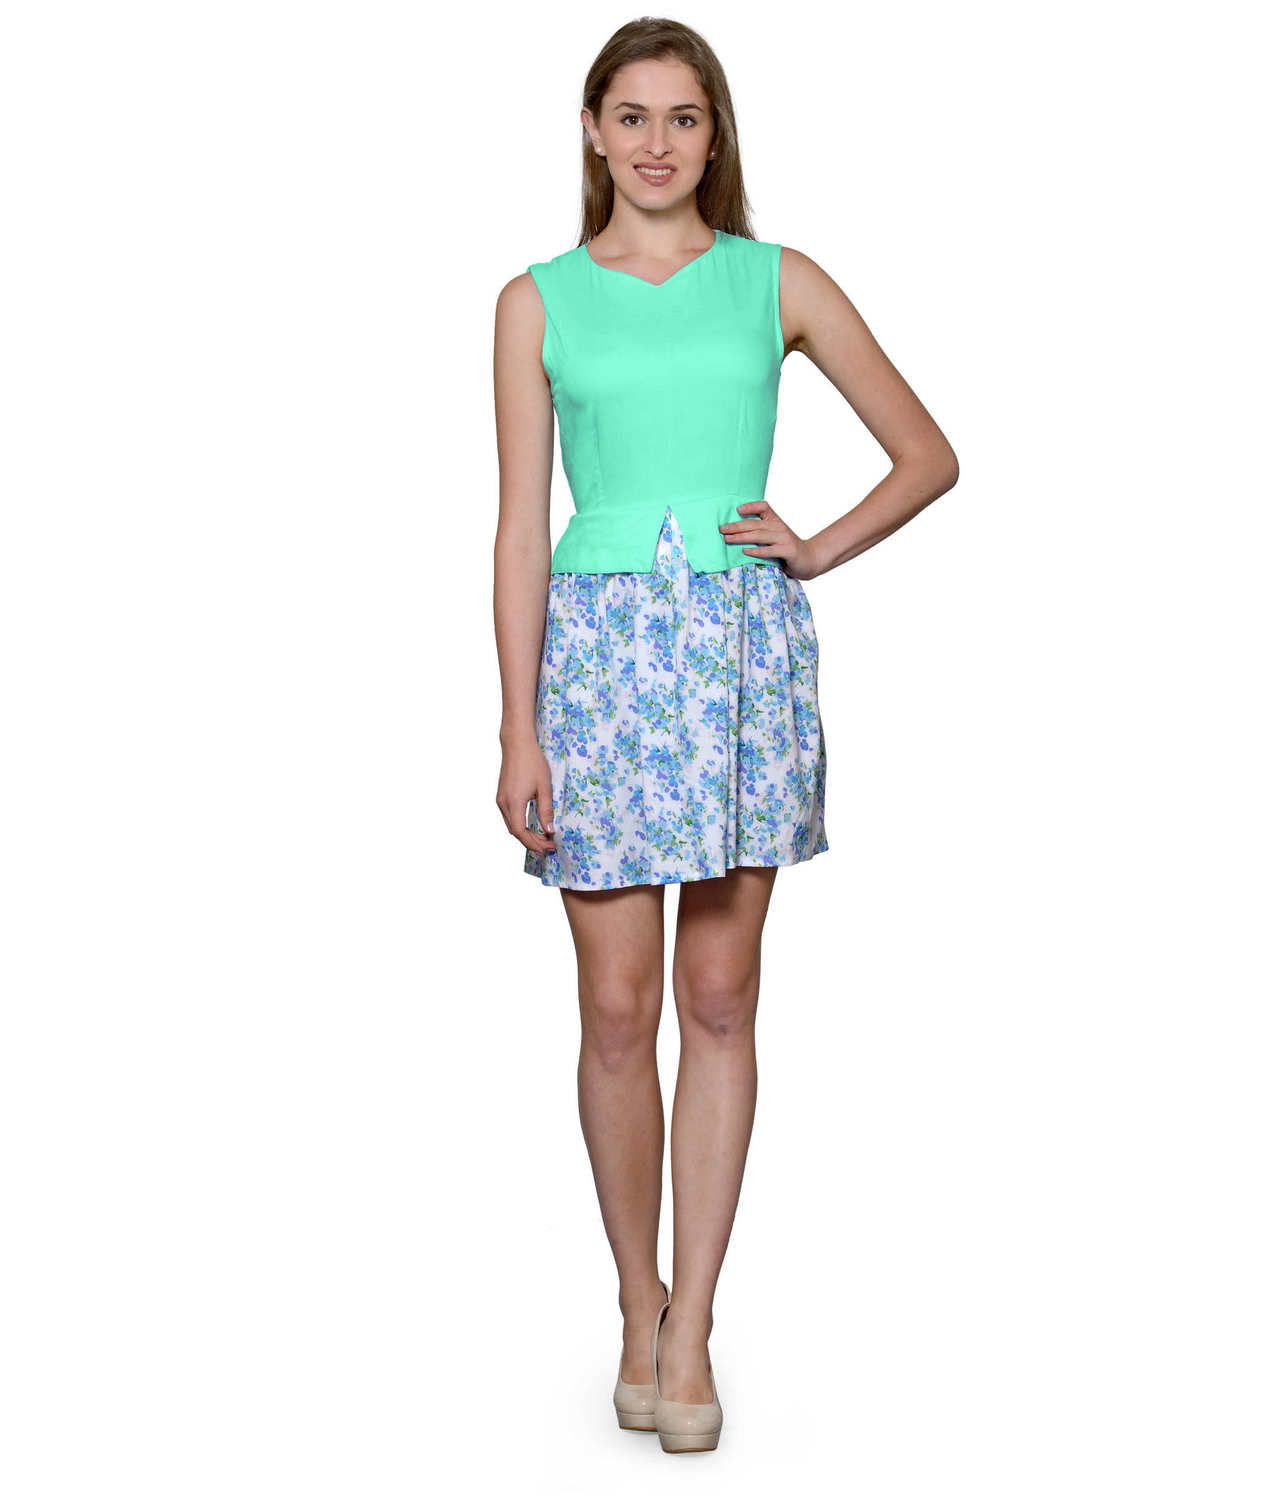 Top and Skirt Style Cocktail Mini Dress in Teal Green:Multicolour